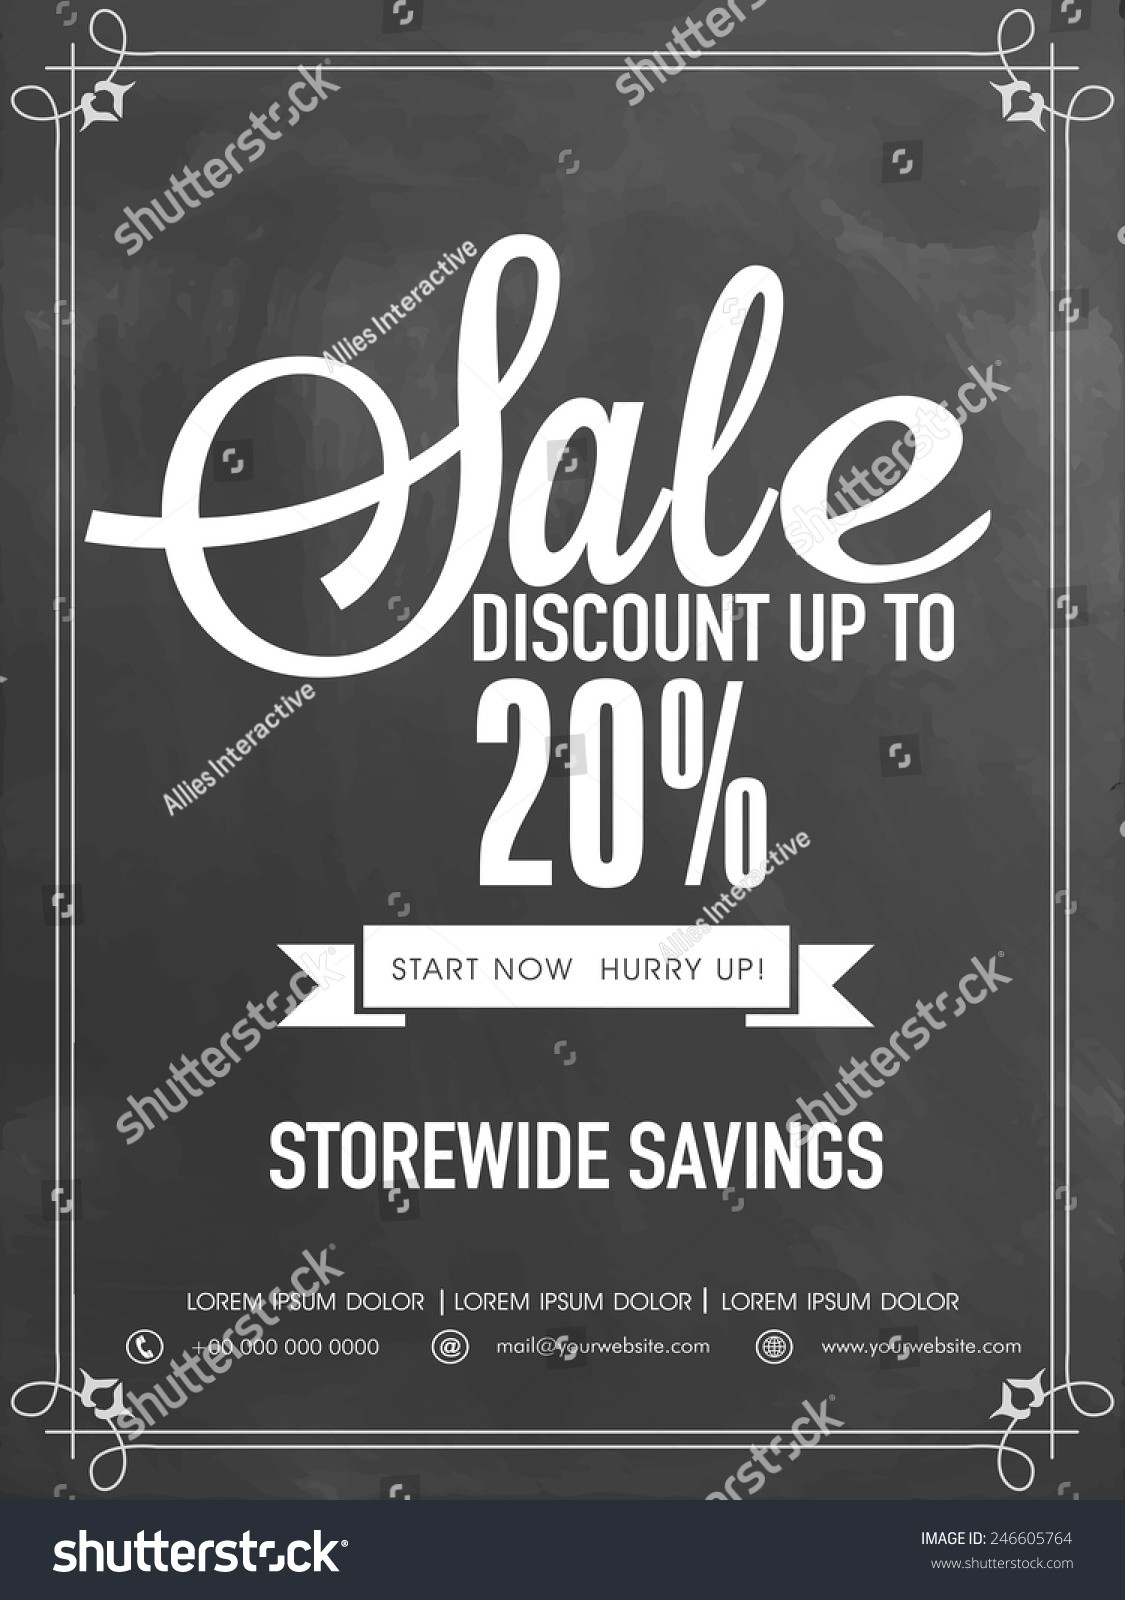 20 off flyer template  Sale Discount Upto 20 Off Flyer Stock Vector 246605764 ..